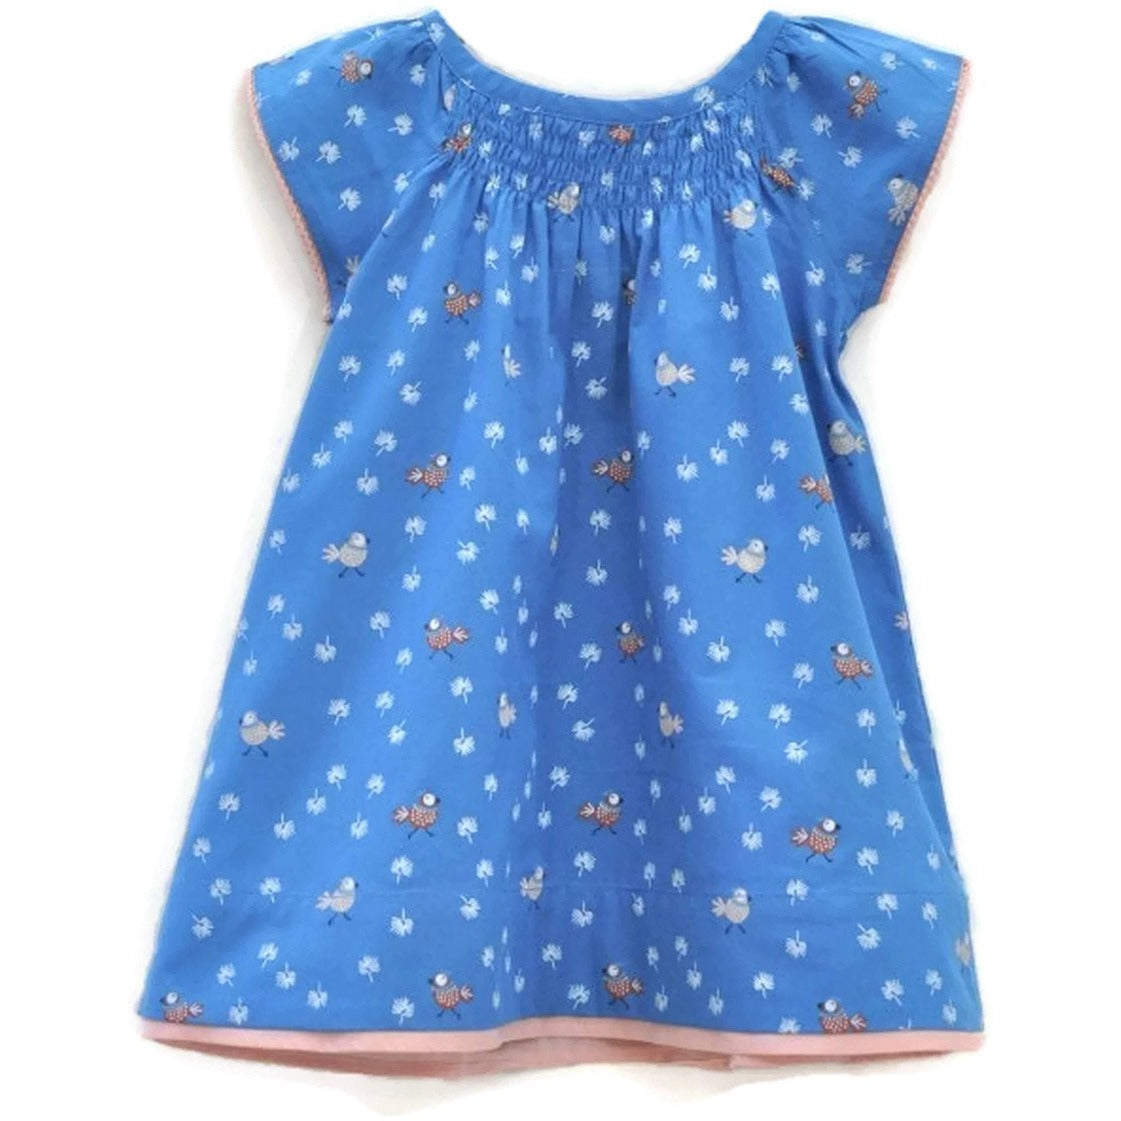 Piccalilly Organic Cotton Kids Robe 2Y-4Y Blue